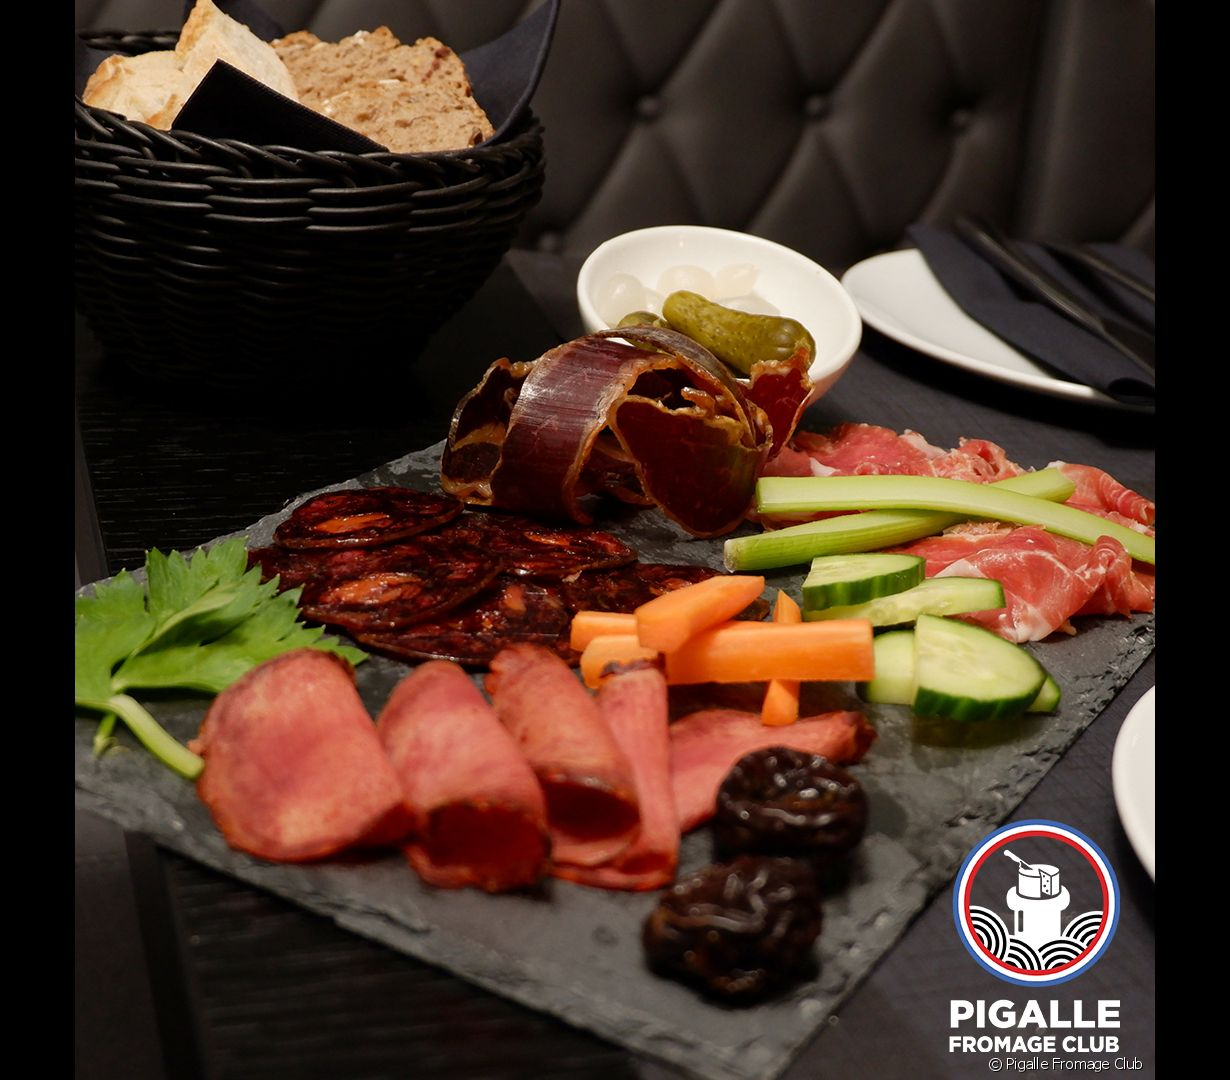 Pigalle Fromage Club, 35 Rue Jean-Baptiste Pigalle, 75009 Paris - Photo 16